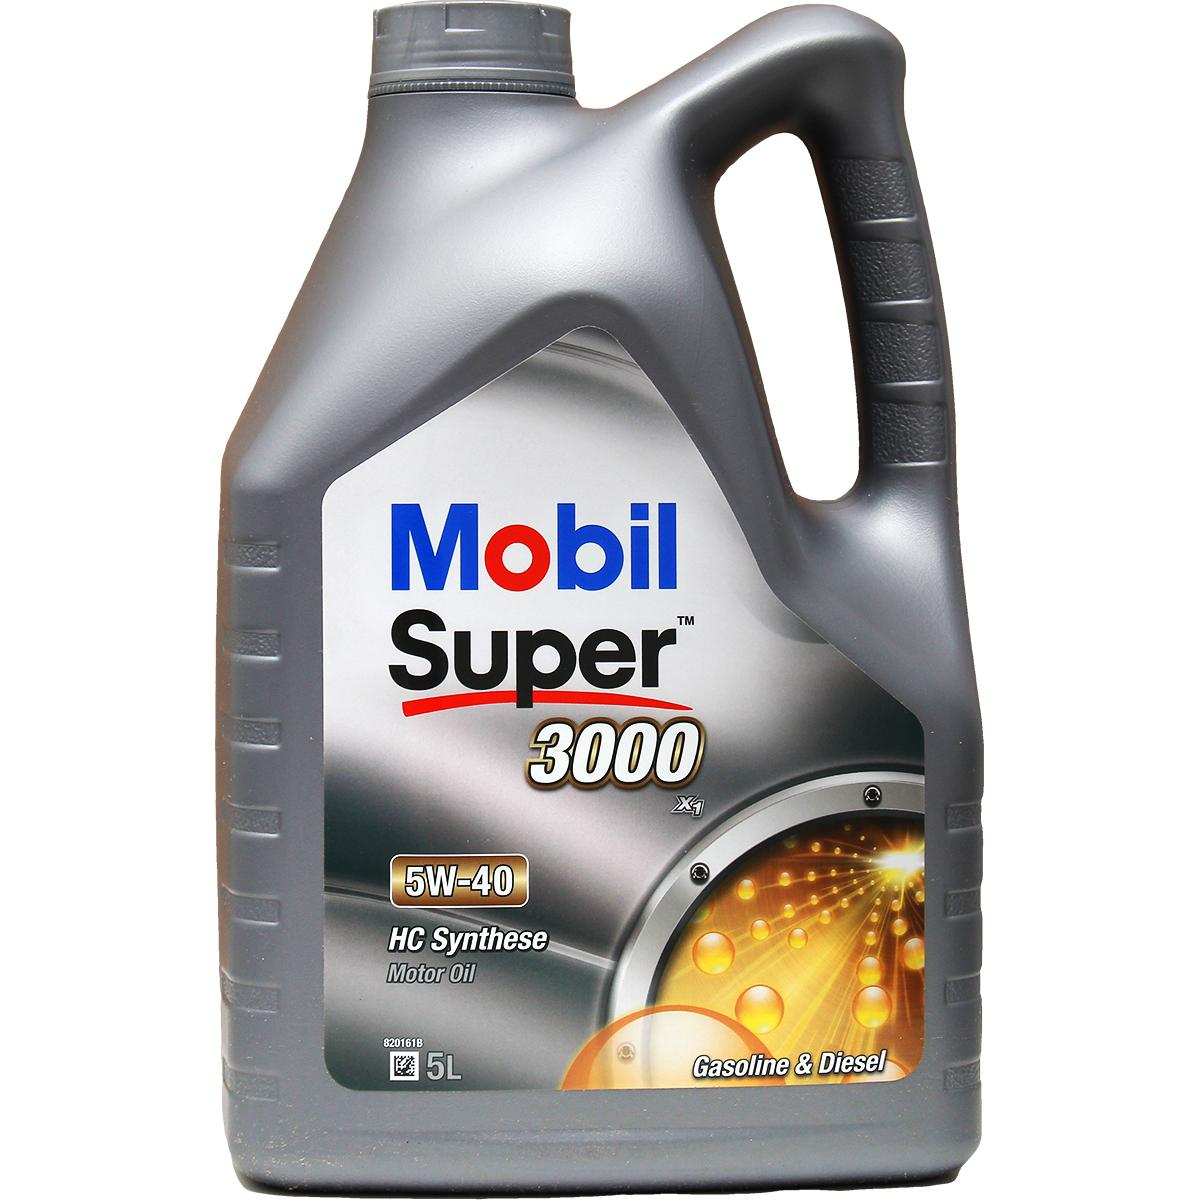 Car spare parts ALFA ROMEO ARNA 1986: Engine Oil MOBIL 150565 at a discount — buy now!